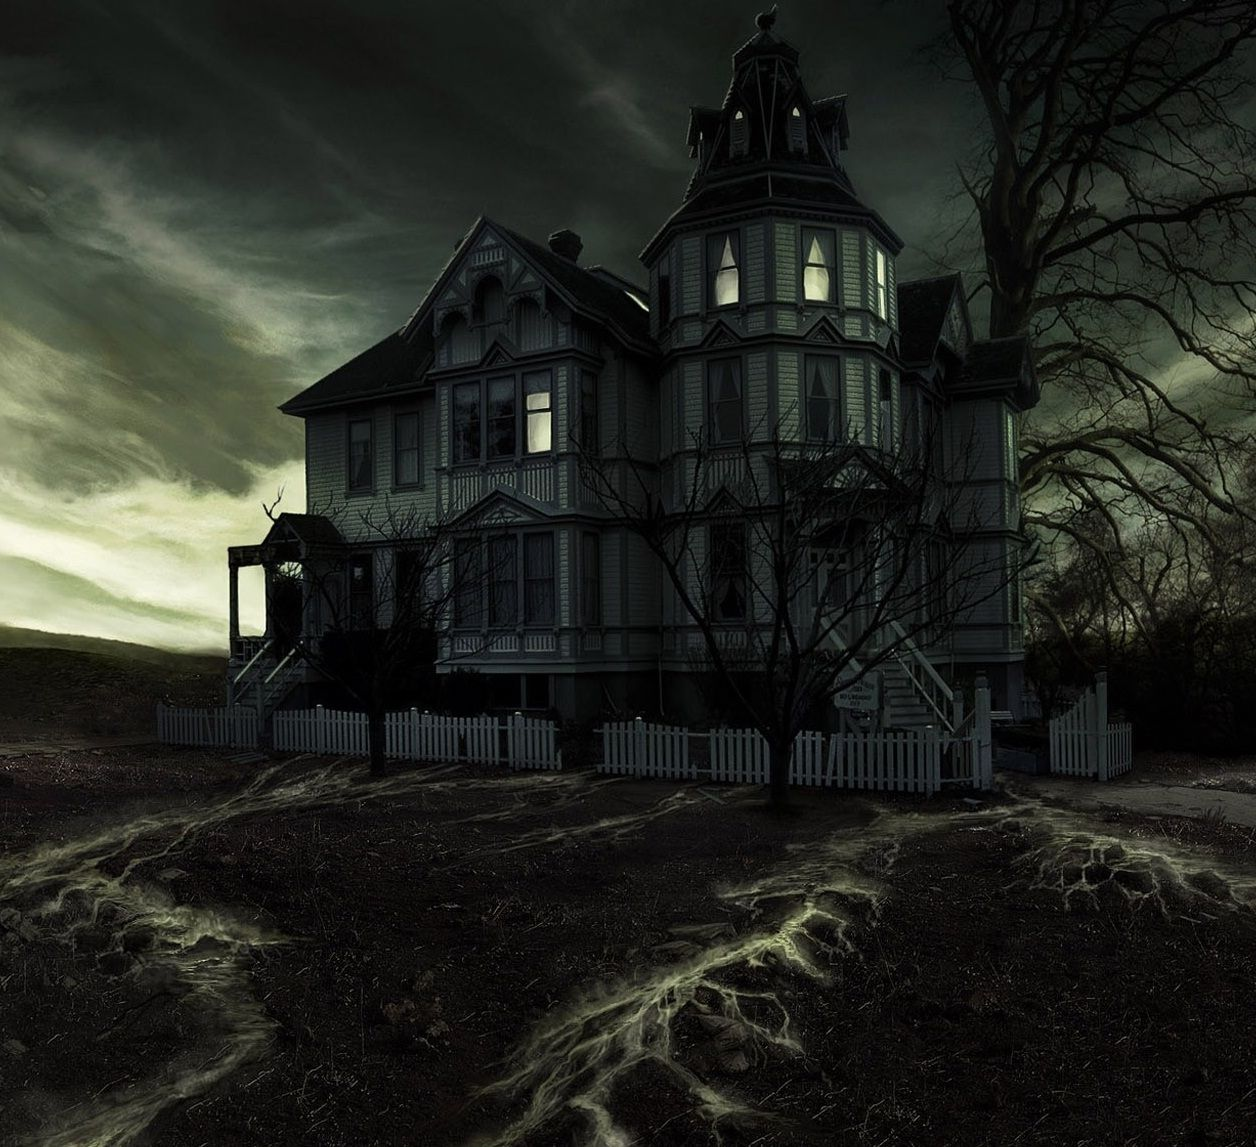 A visit to the haunted house